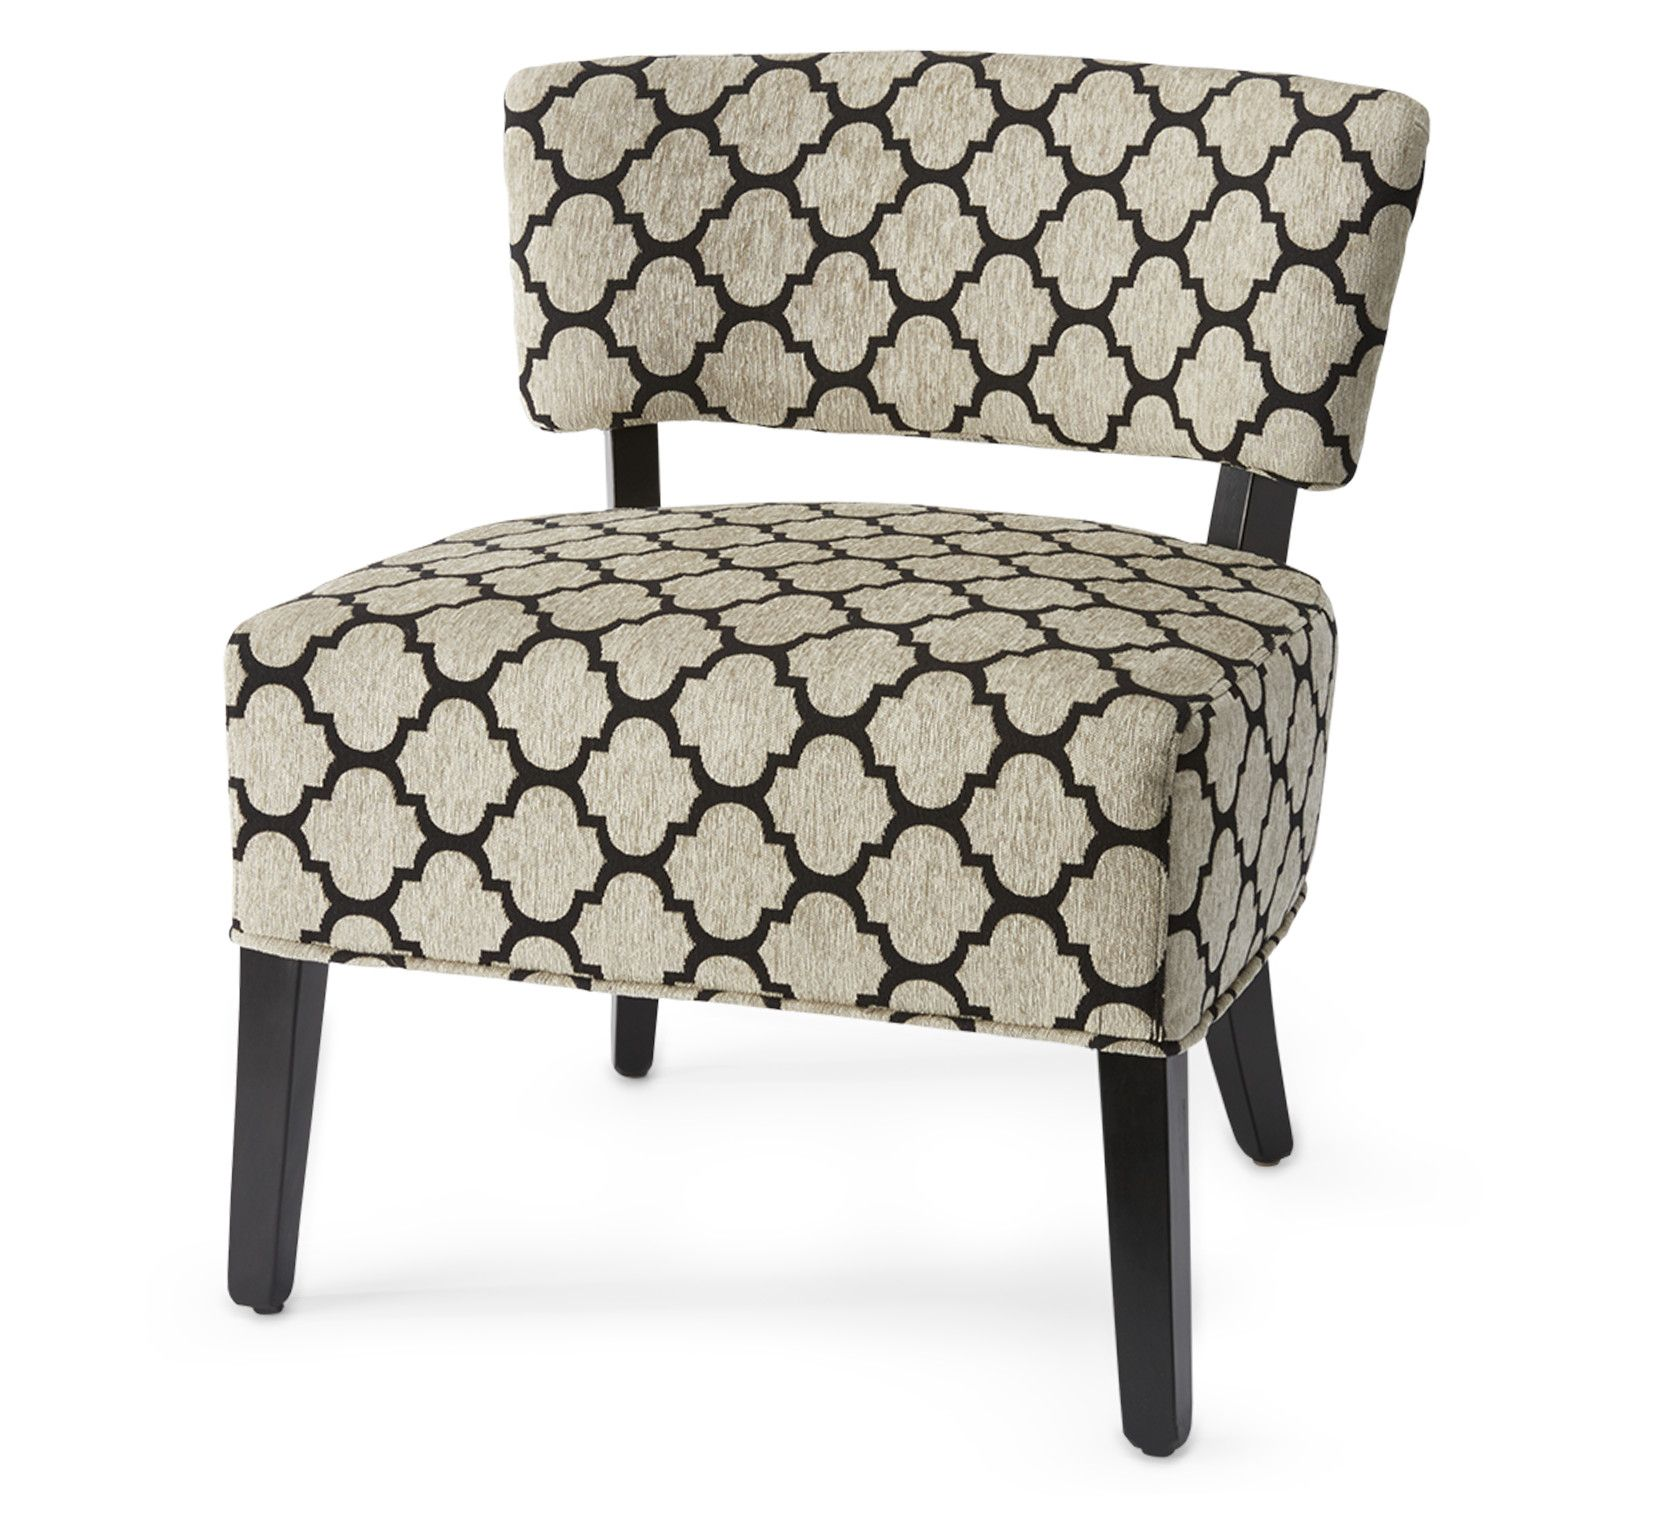 Upholstered Chair With Wood Legs Upholstered Chairs Chair Decor